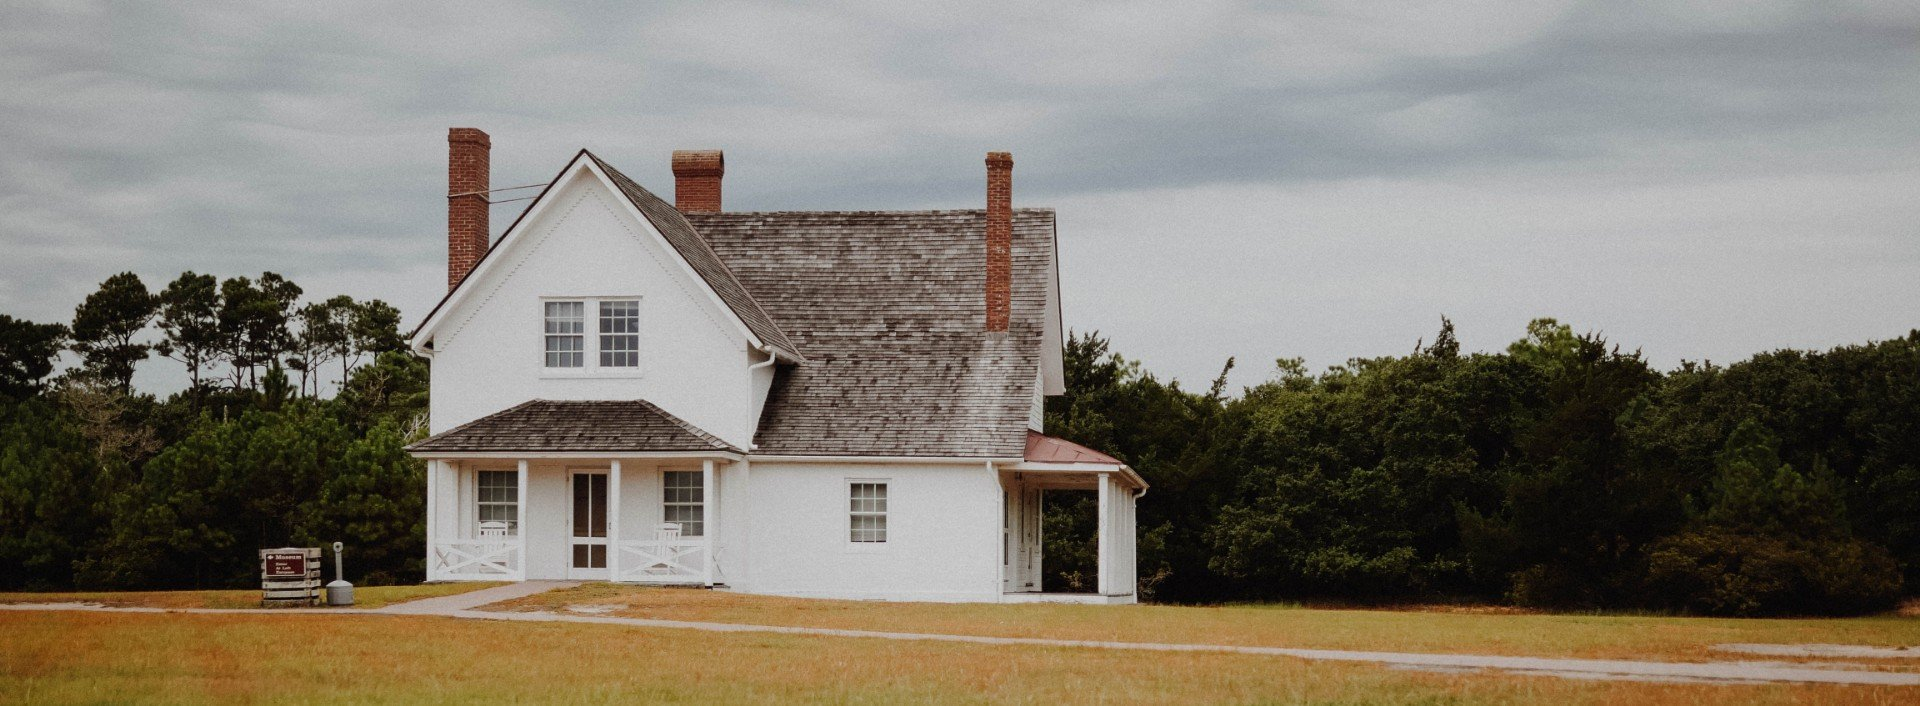 Big white house on an empty field, vocabulary for buying a house in English